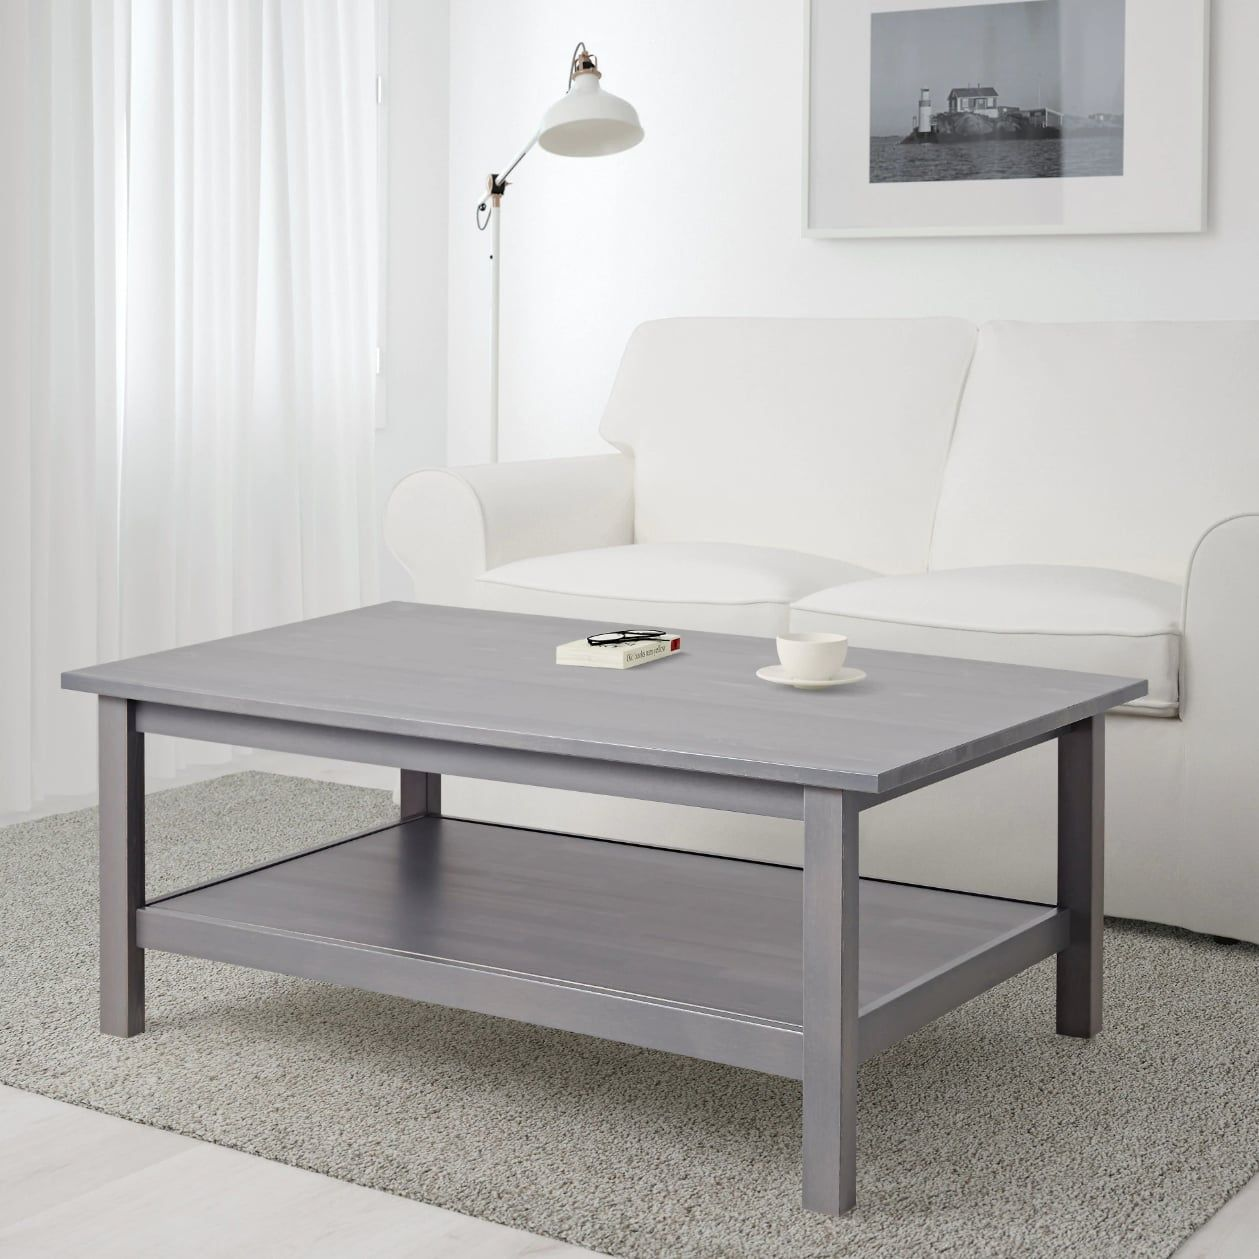 The Best Ikea Furniture Pieces To Give Your Living Room The Storage It Needs Coffee Table Coffee Table Grey Ikea Hemnes Coffee Table [ 1259 x 1259 Pixel ]